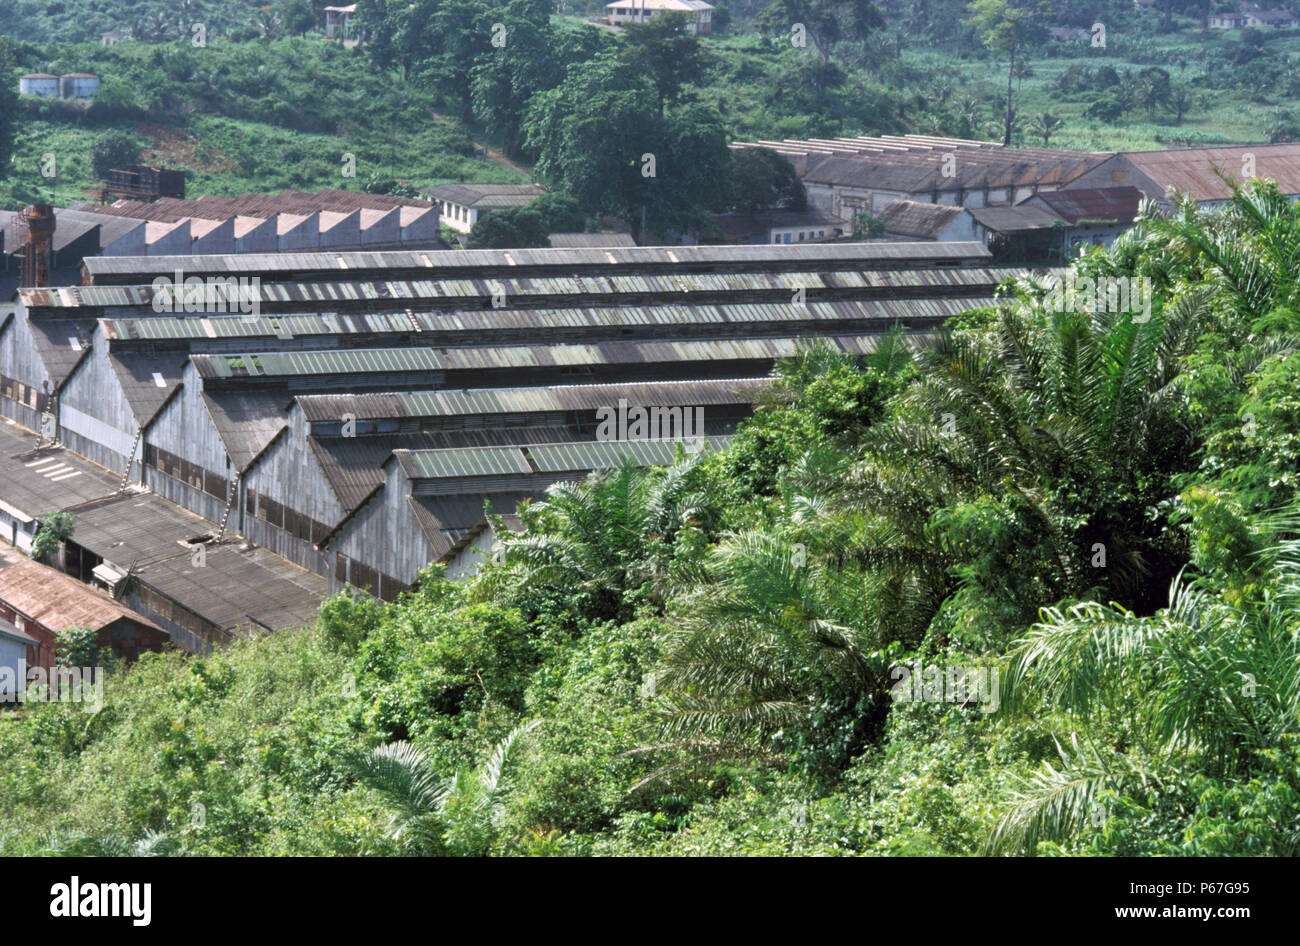 Industrial Lancashire grafted onto primeval forest. Location locomotive Works Ghana where in colonial times the standard of workmanship and quality ec - Stock Image